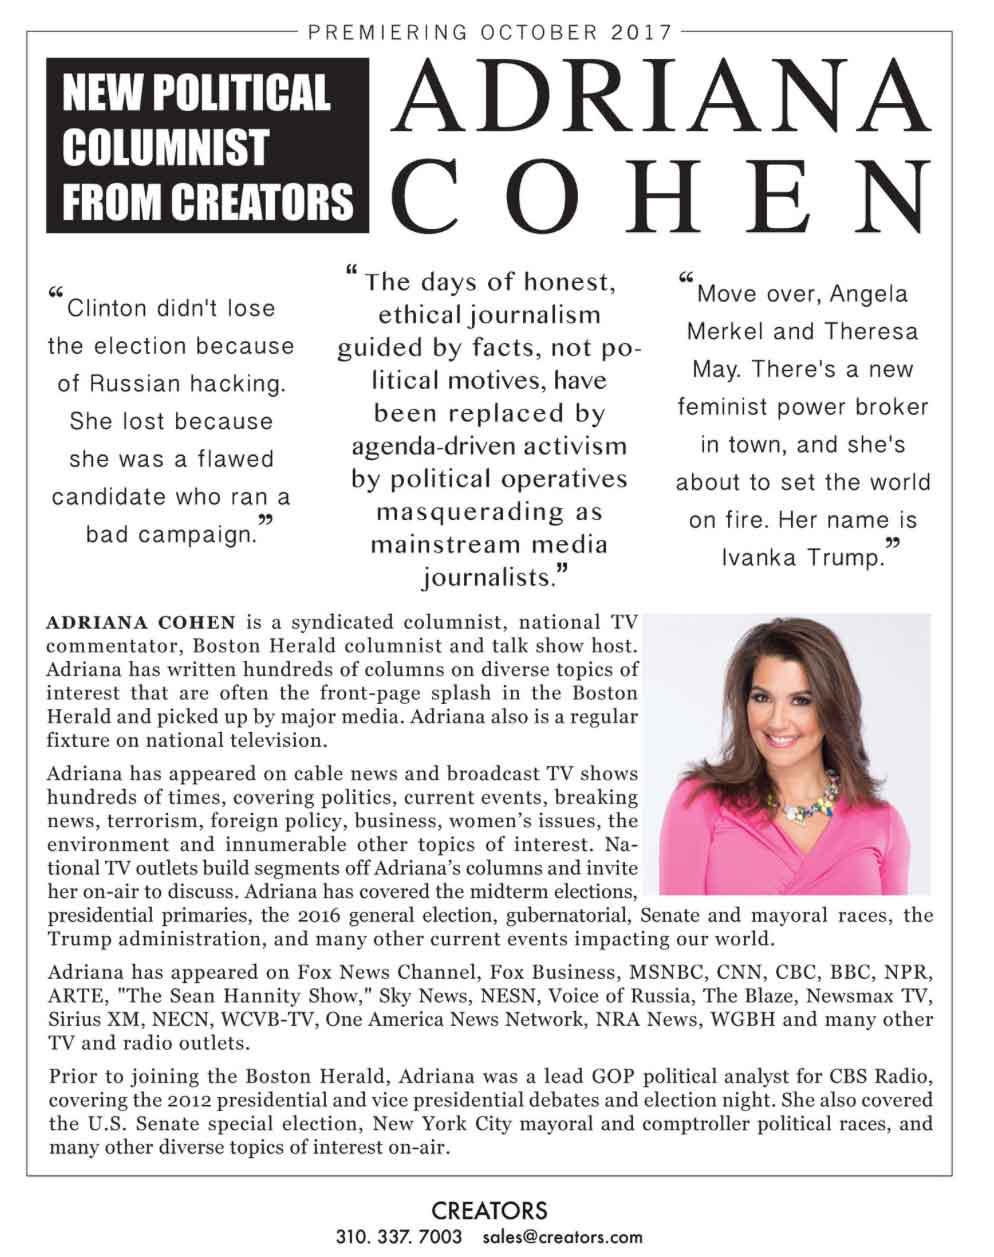 adriana-cohen-boston-herald-columnist